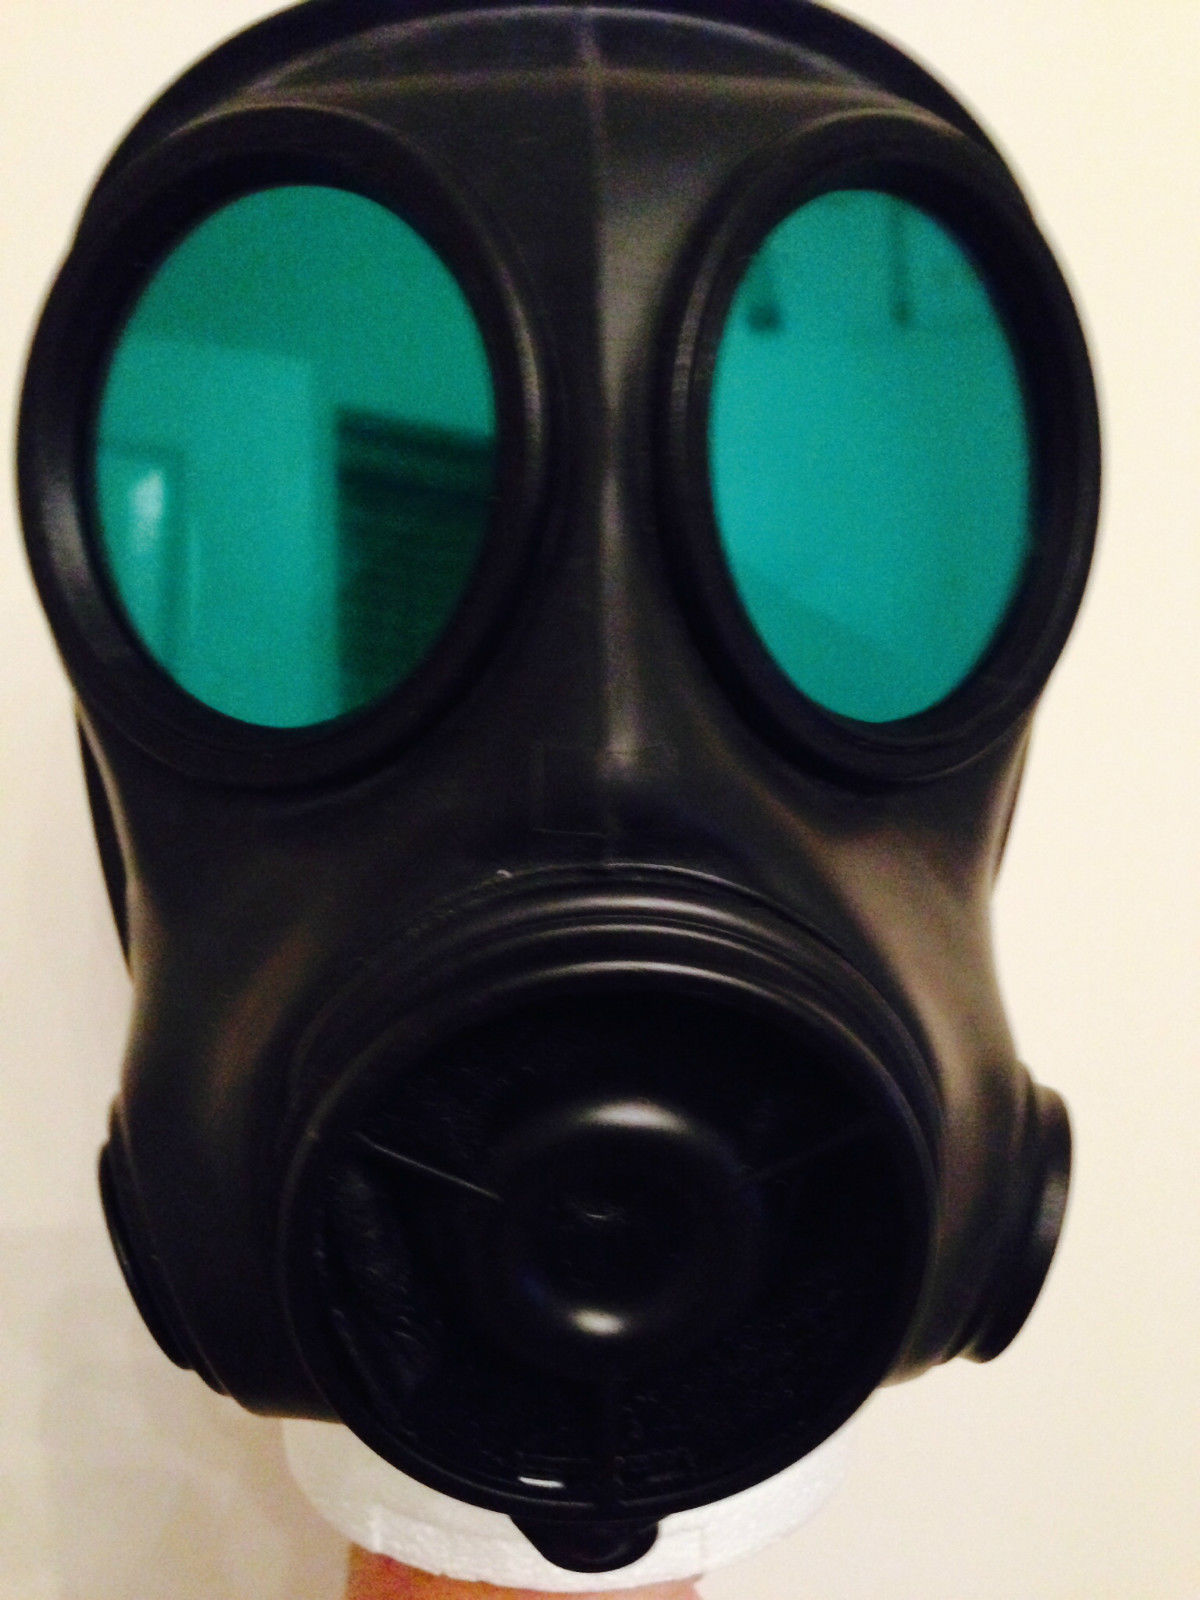 Gas Mask Replacement Lenses for Airsoft this is a Vital Upgrade